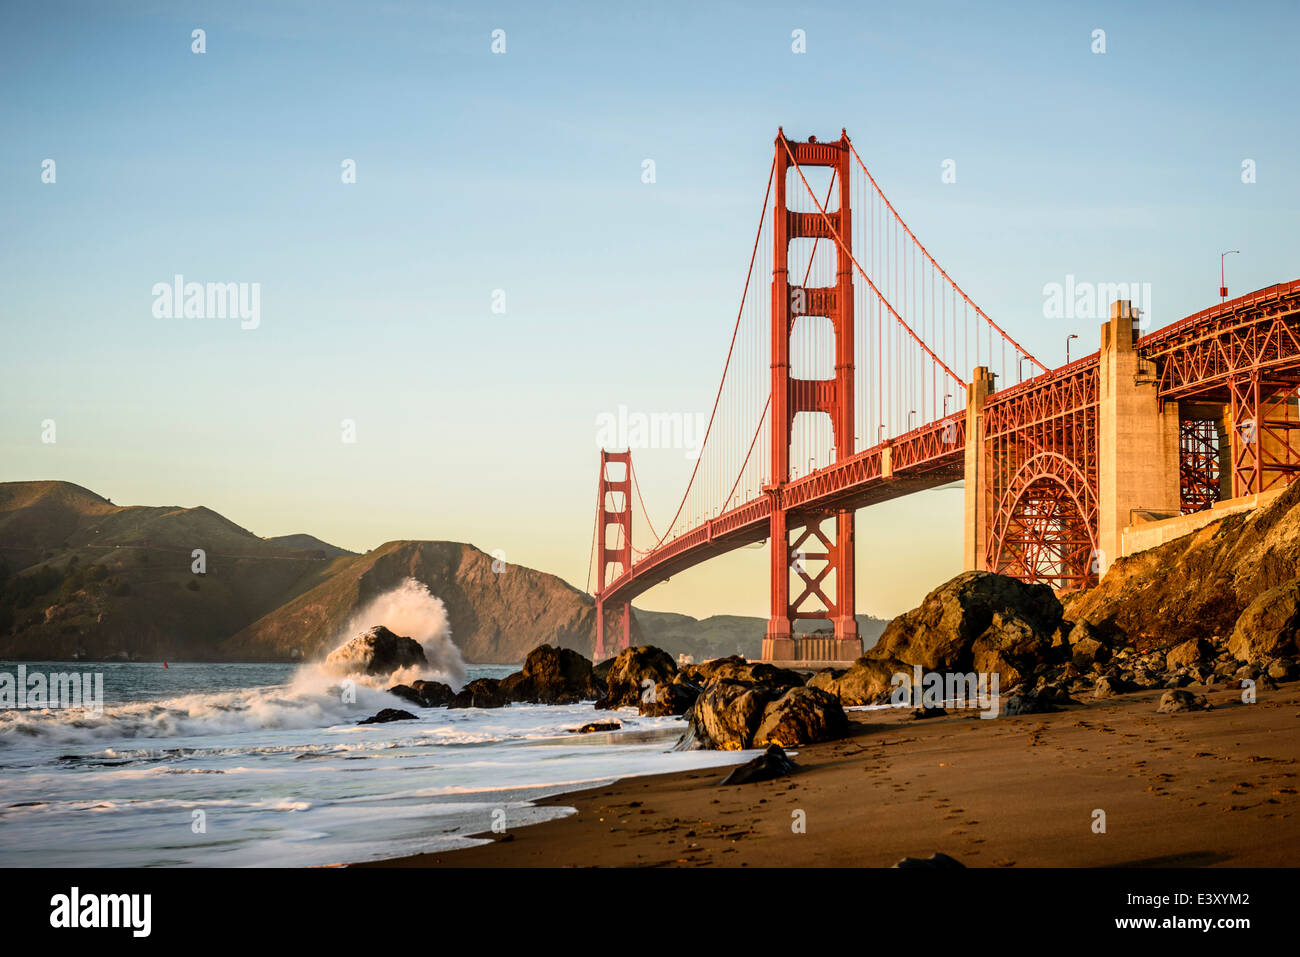 View of Golden Gate Bridge from beach, San Francisco, California, United States - Stock Image